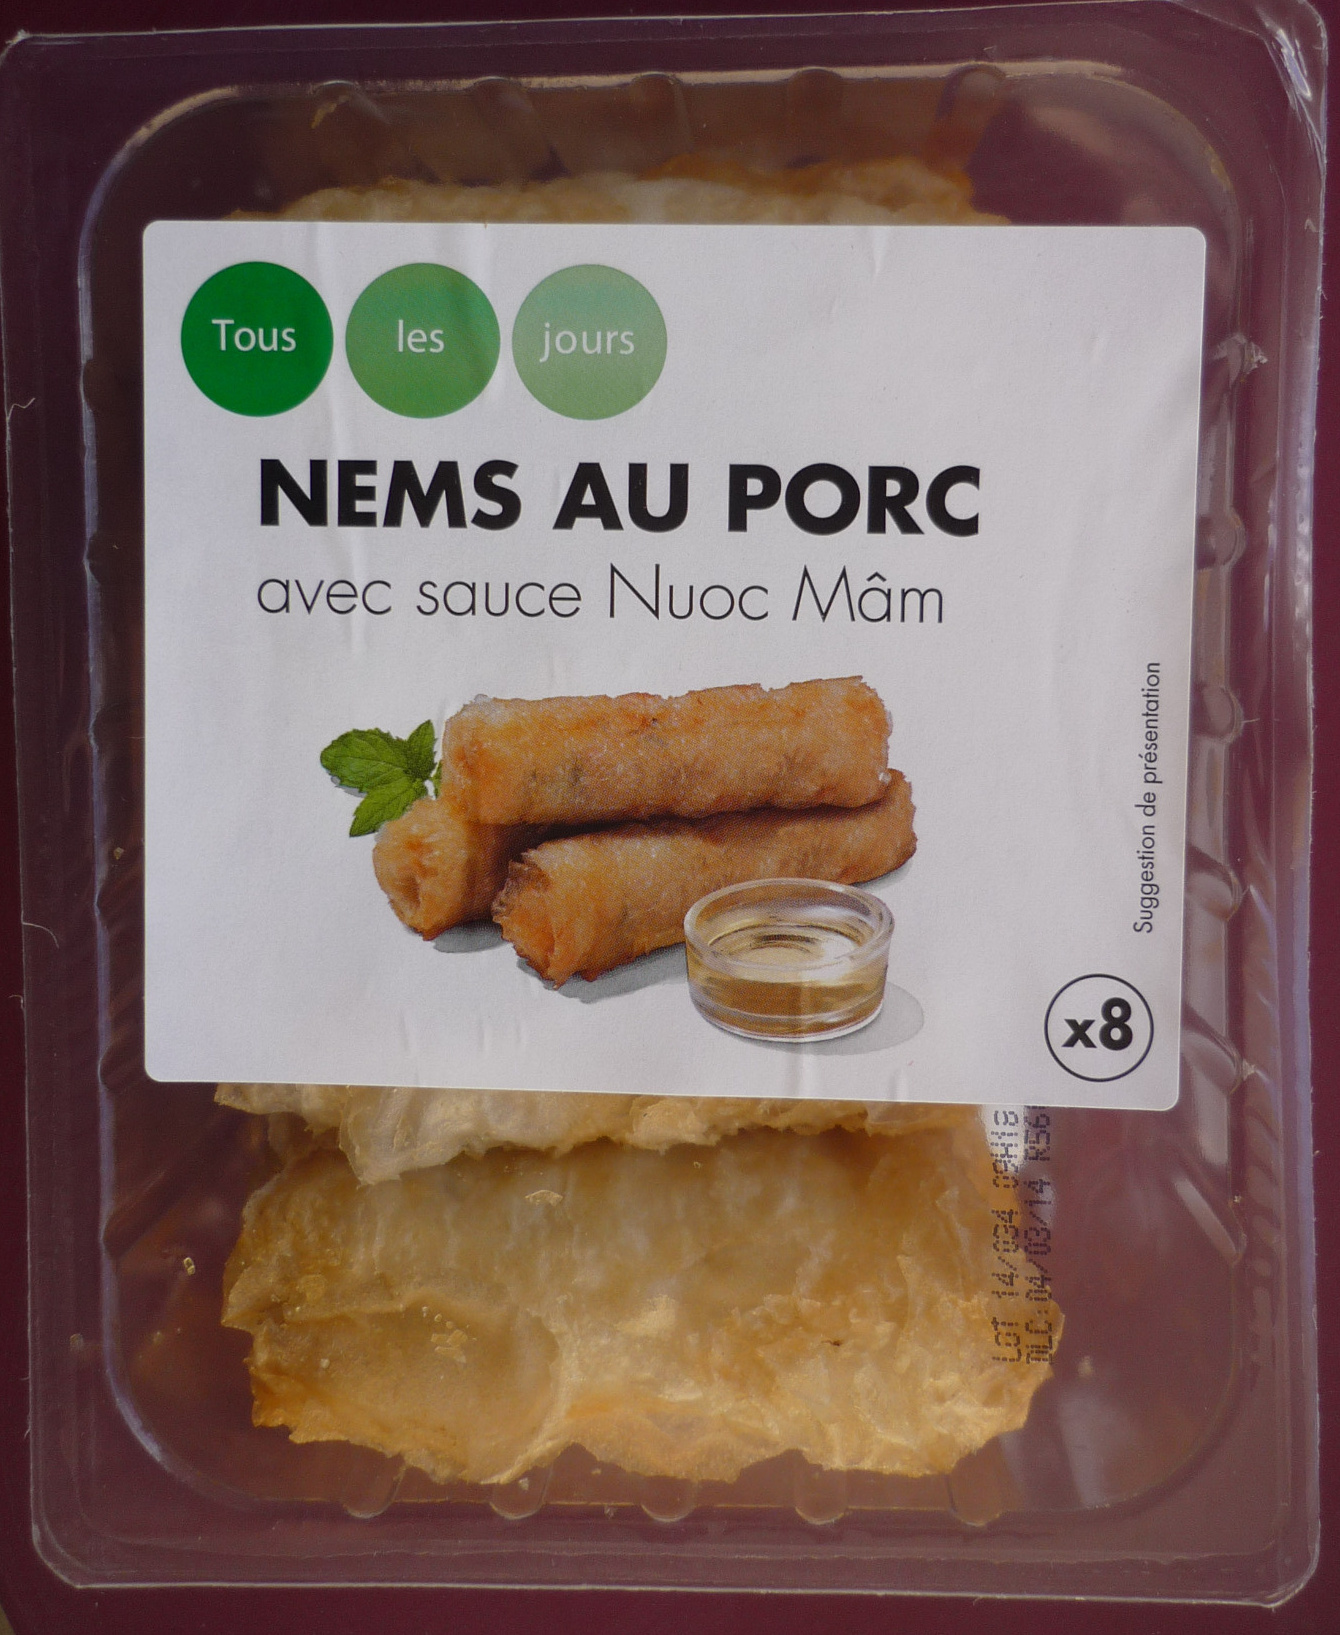 how to make nuoc mam sauce